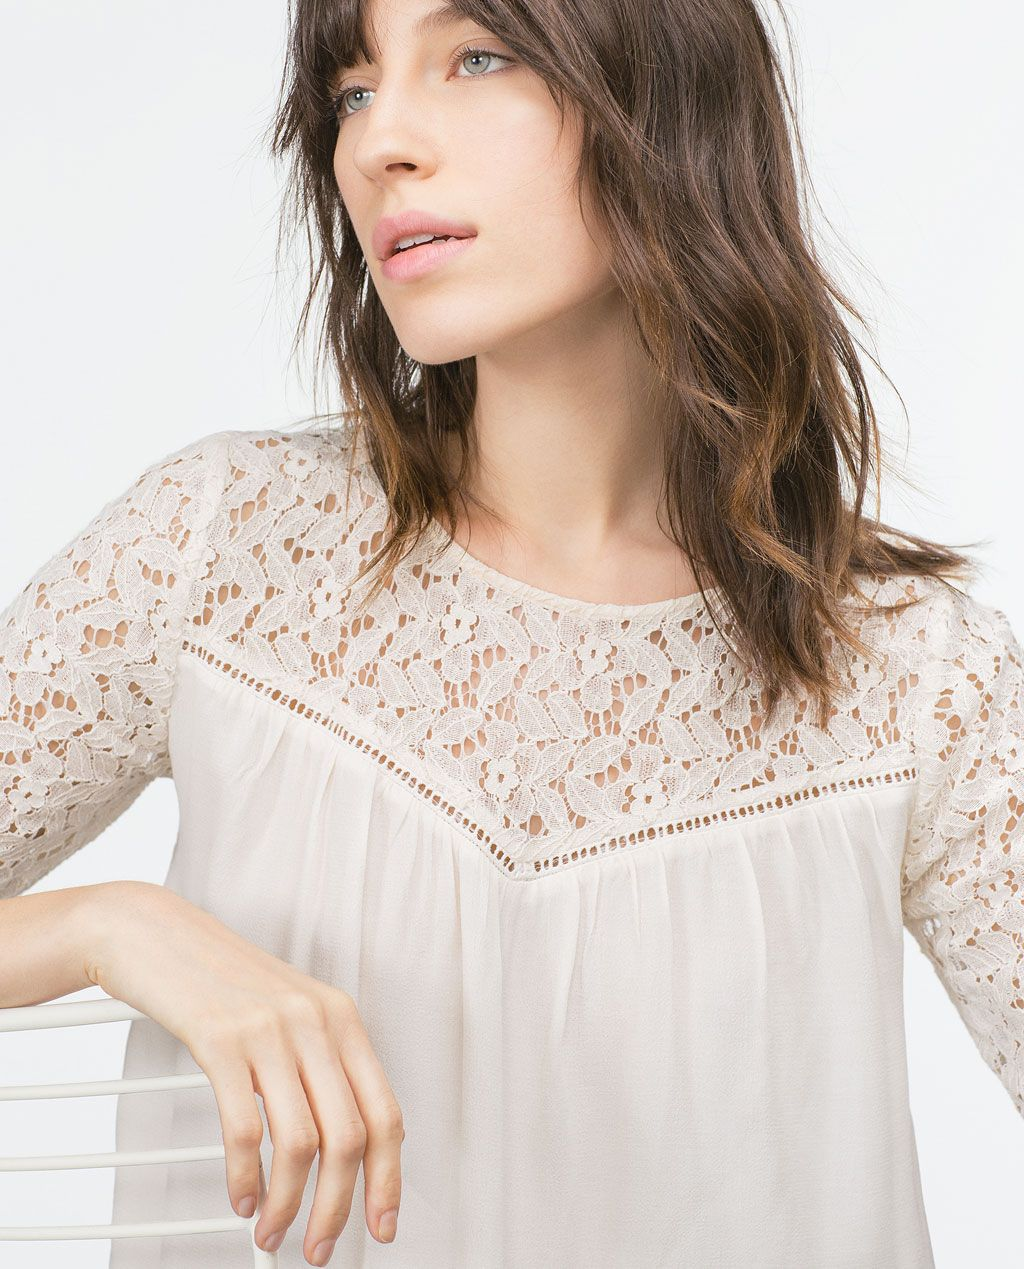 ba147e46868a ZARA - COLLECTION AW15 - GUIPURE LACE BLOUSE | Outfit ideas ...